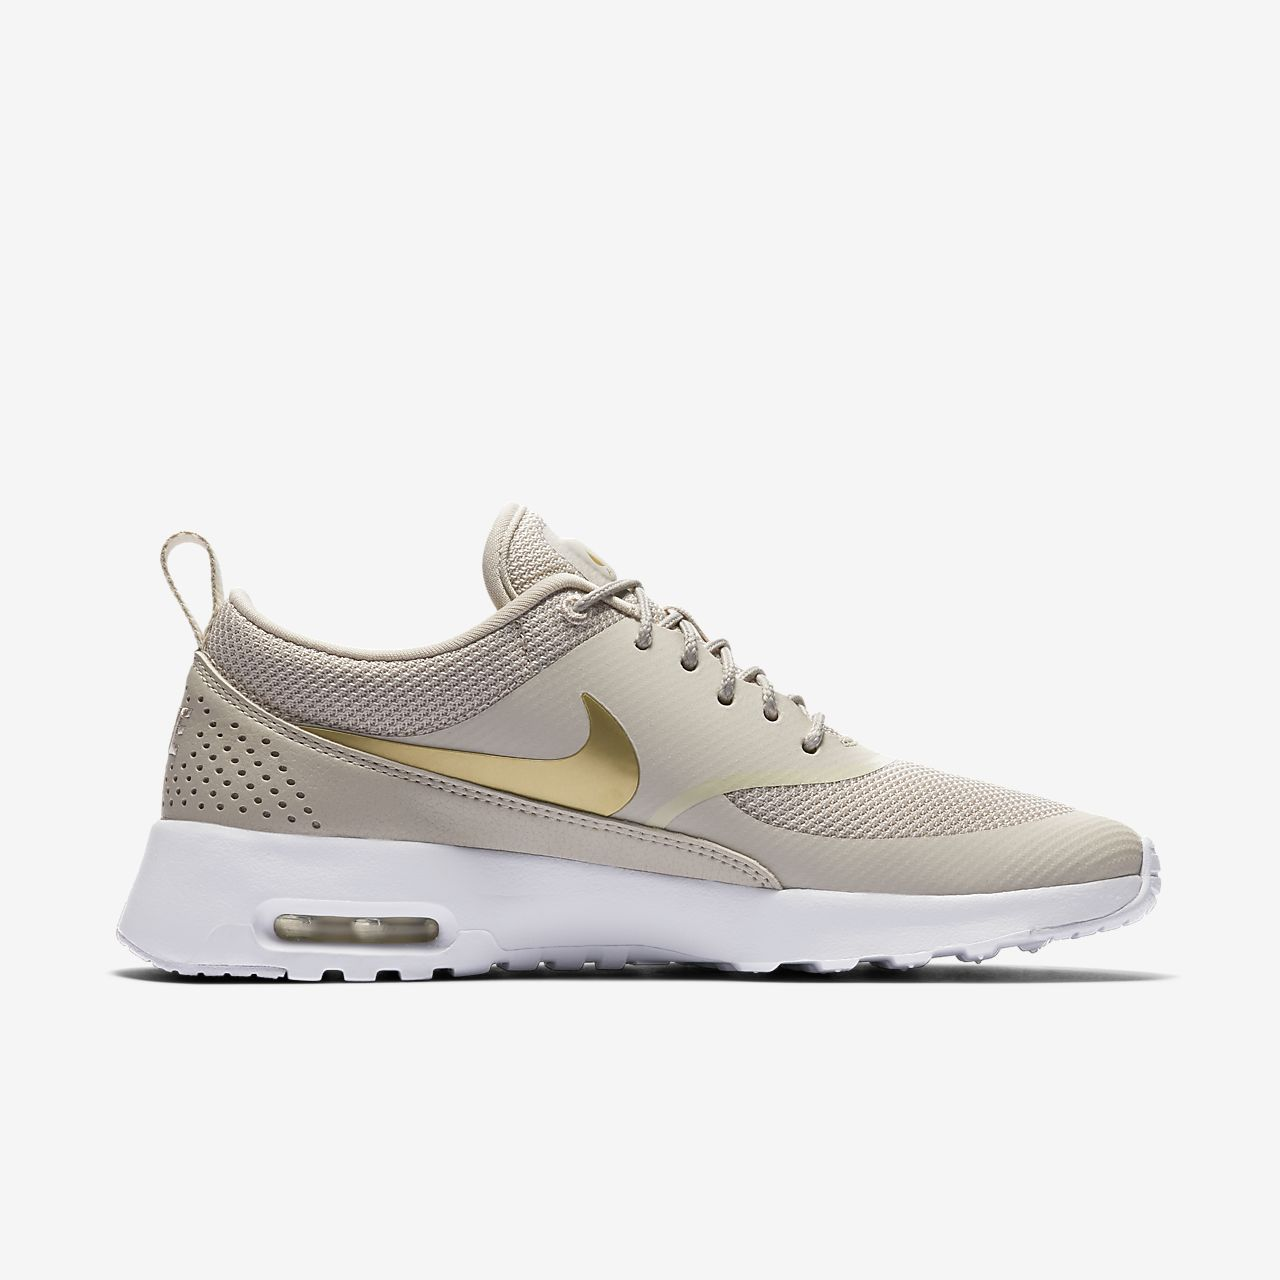 nike air max thea women 39 s shoe gb